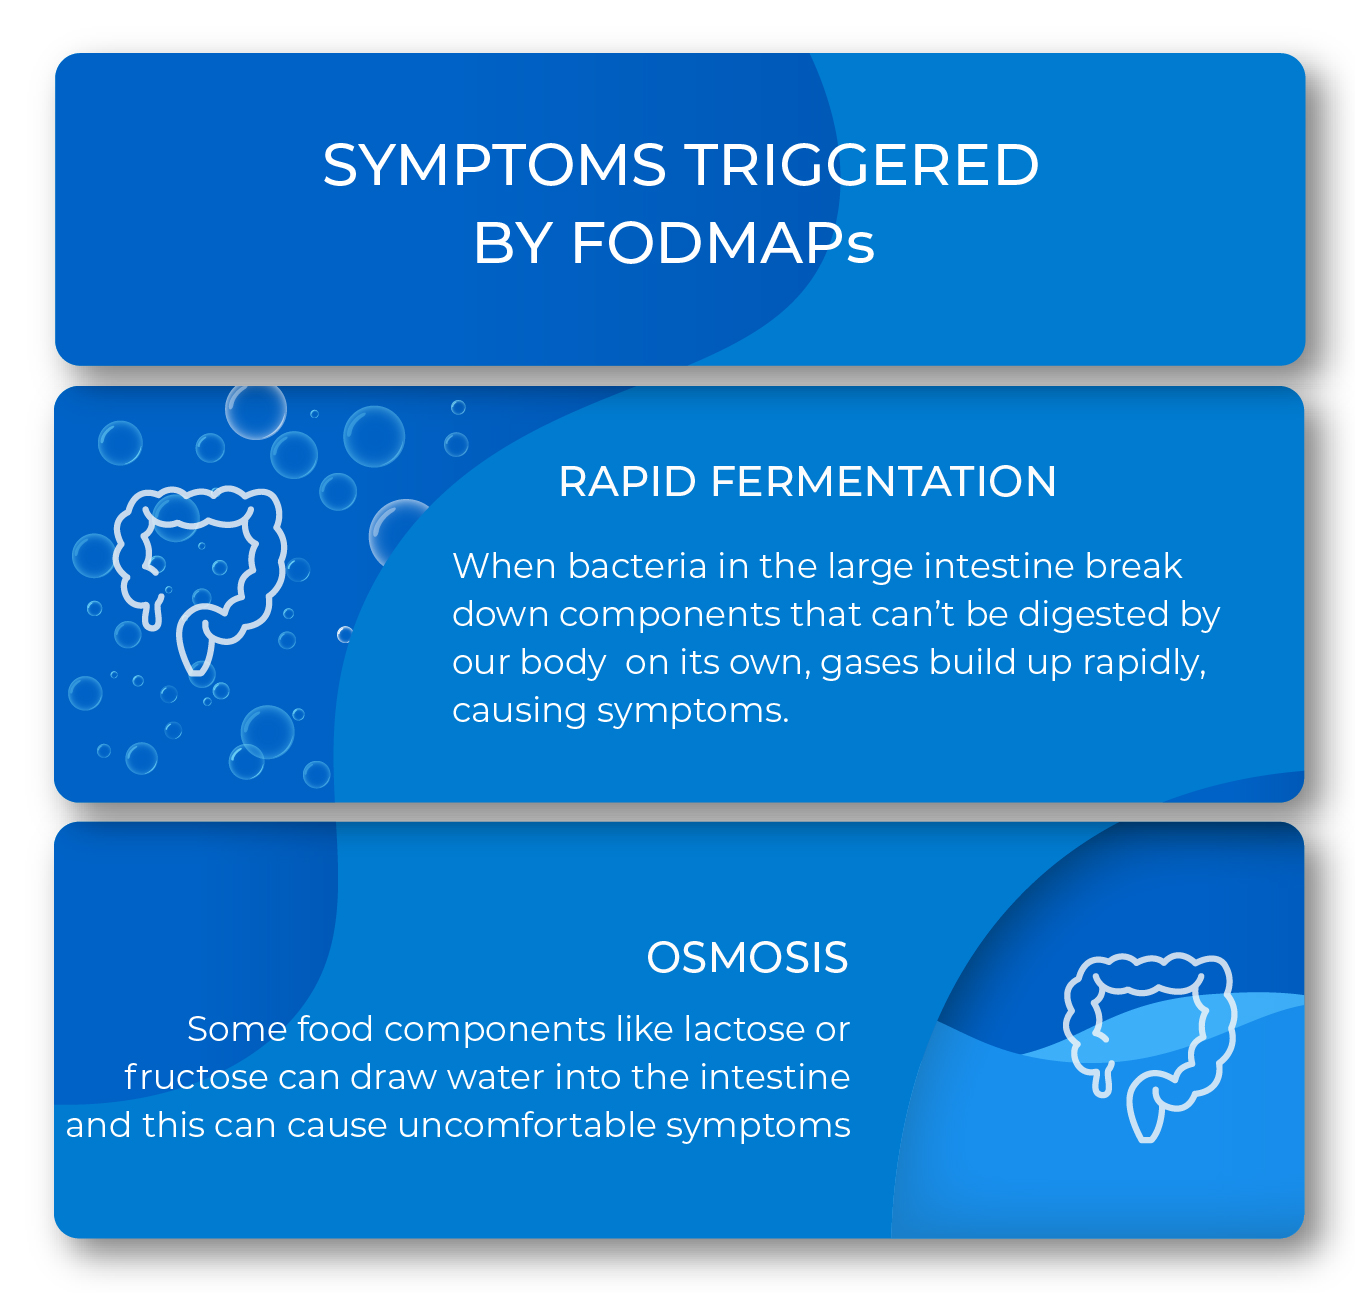 How does FODMAPs cause IBS symptoms